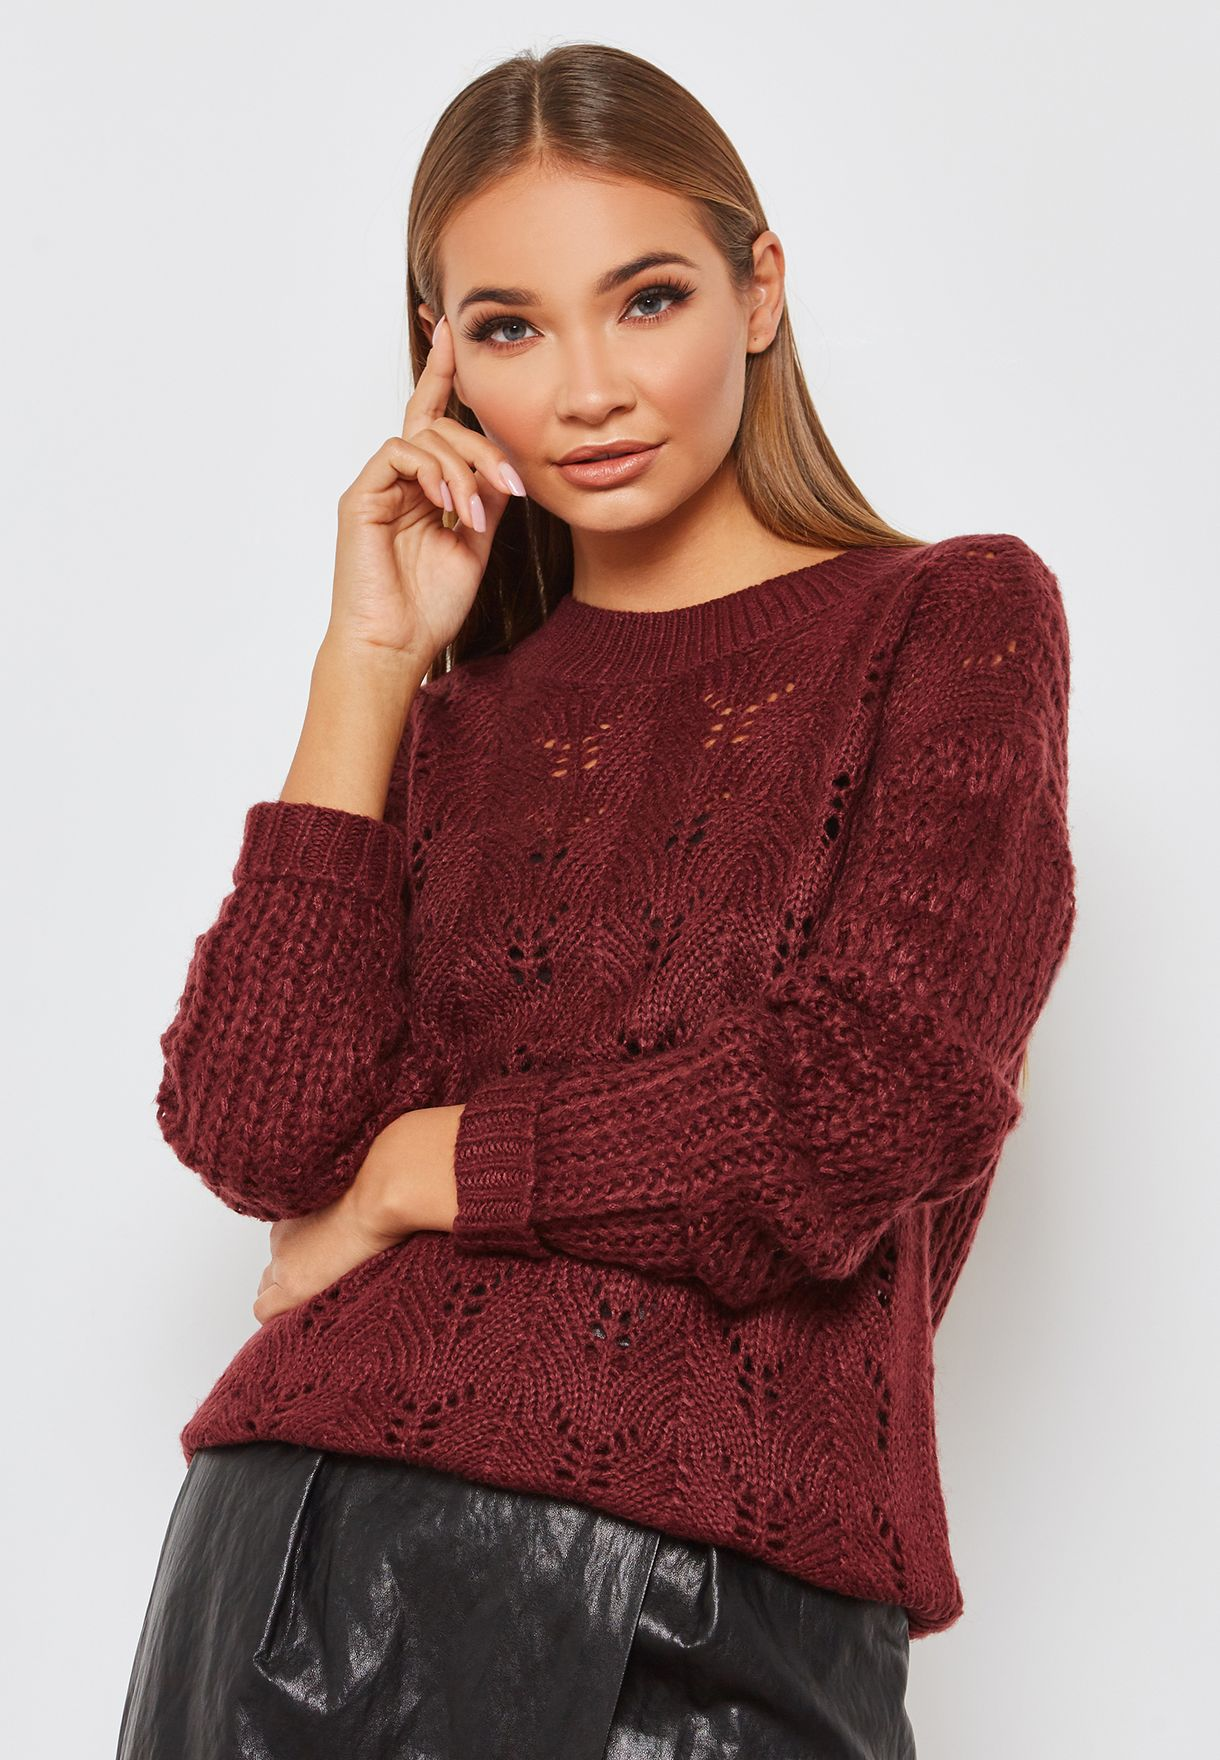 bbcc045caa6 Cable Knit Sweater